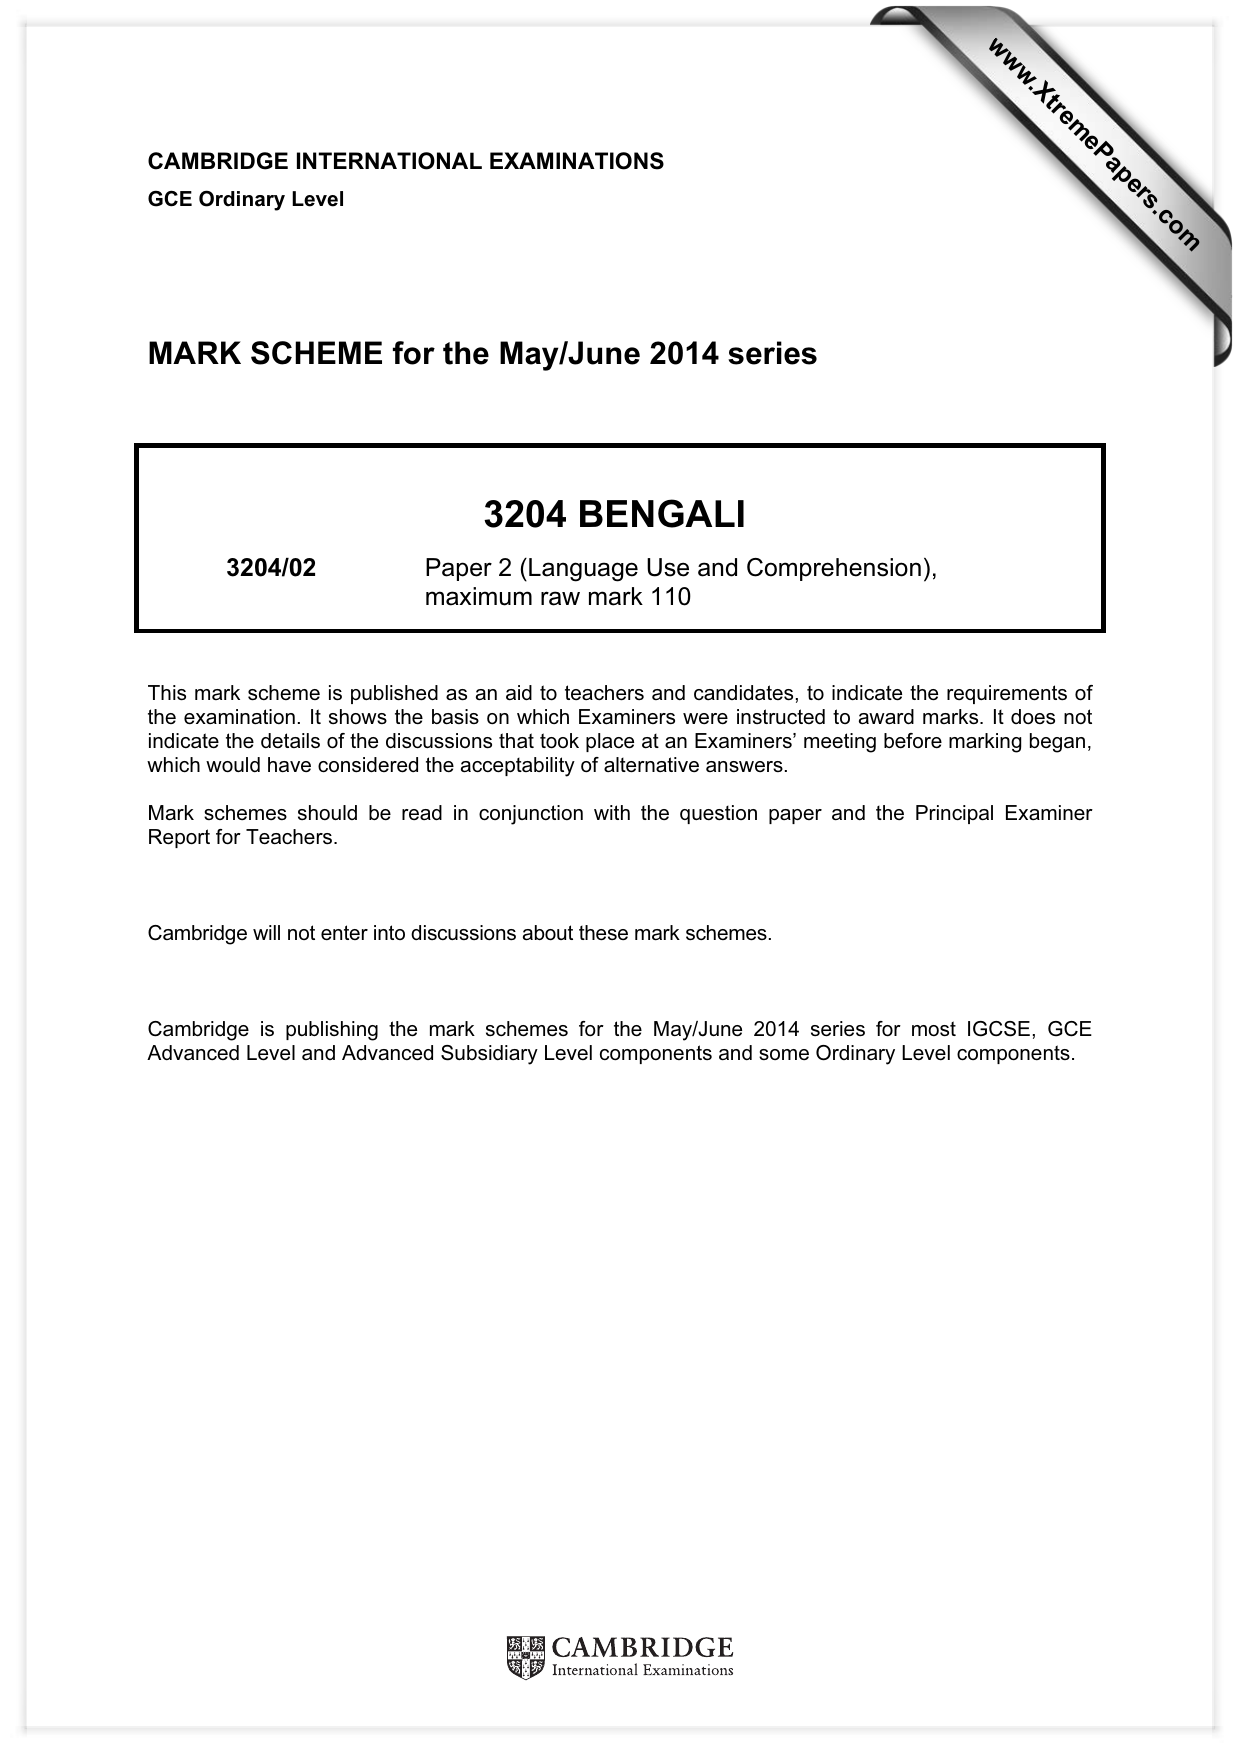 3204 BENGALI MARK SCHEME for the May/June 2014 series